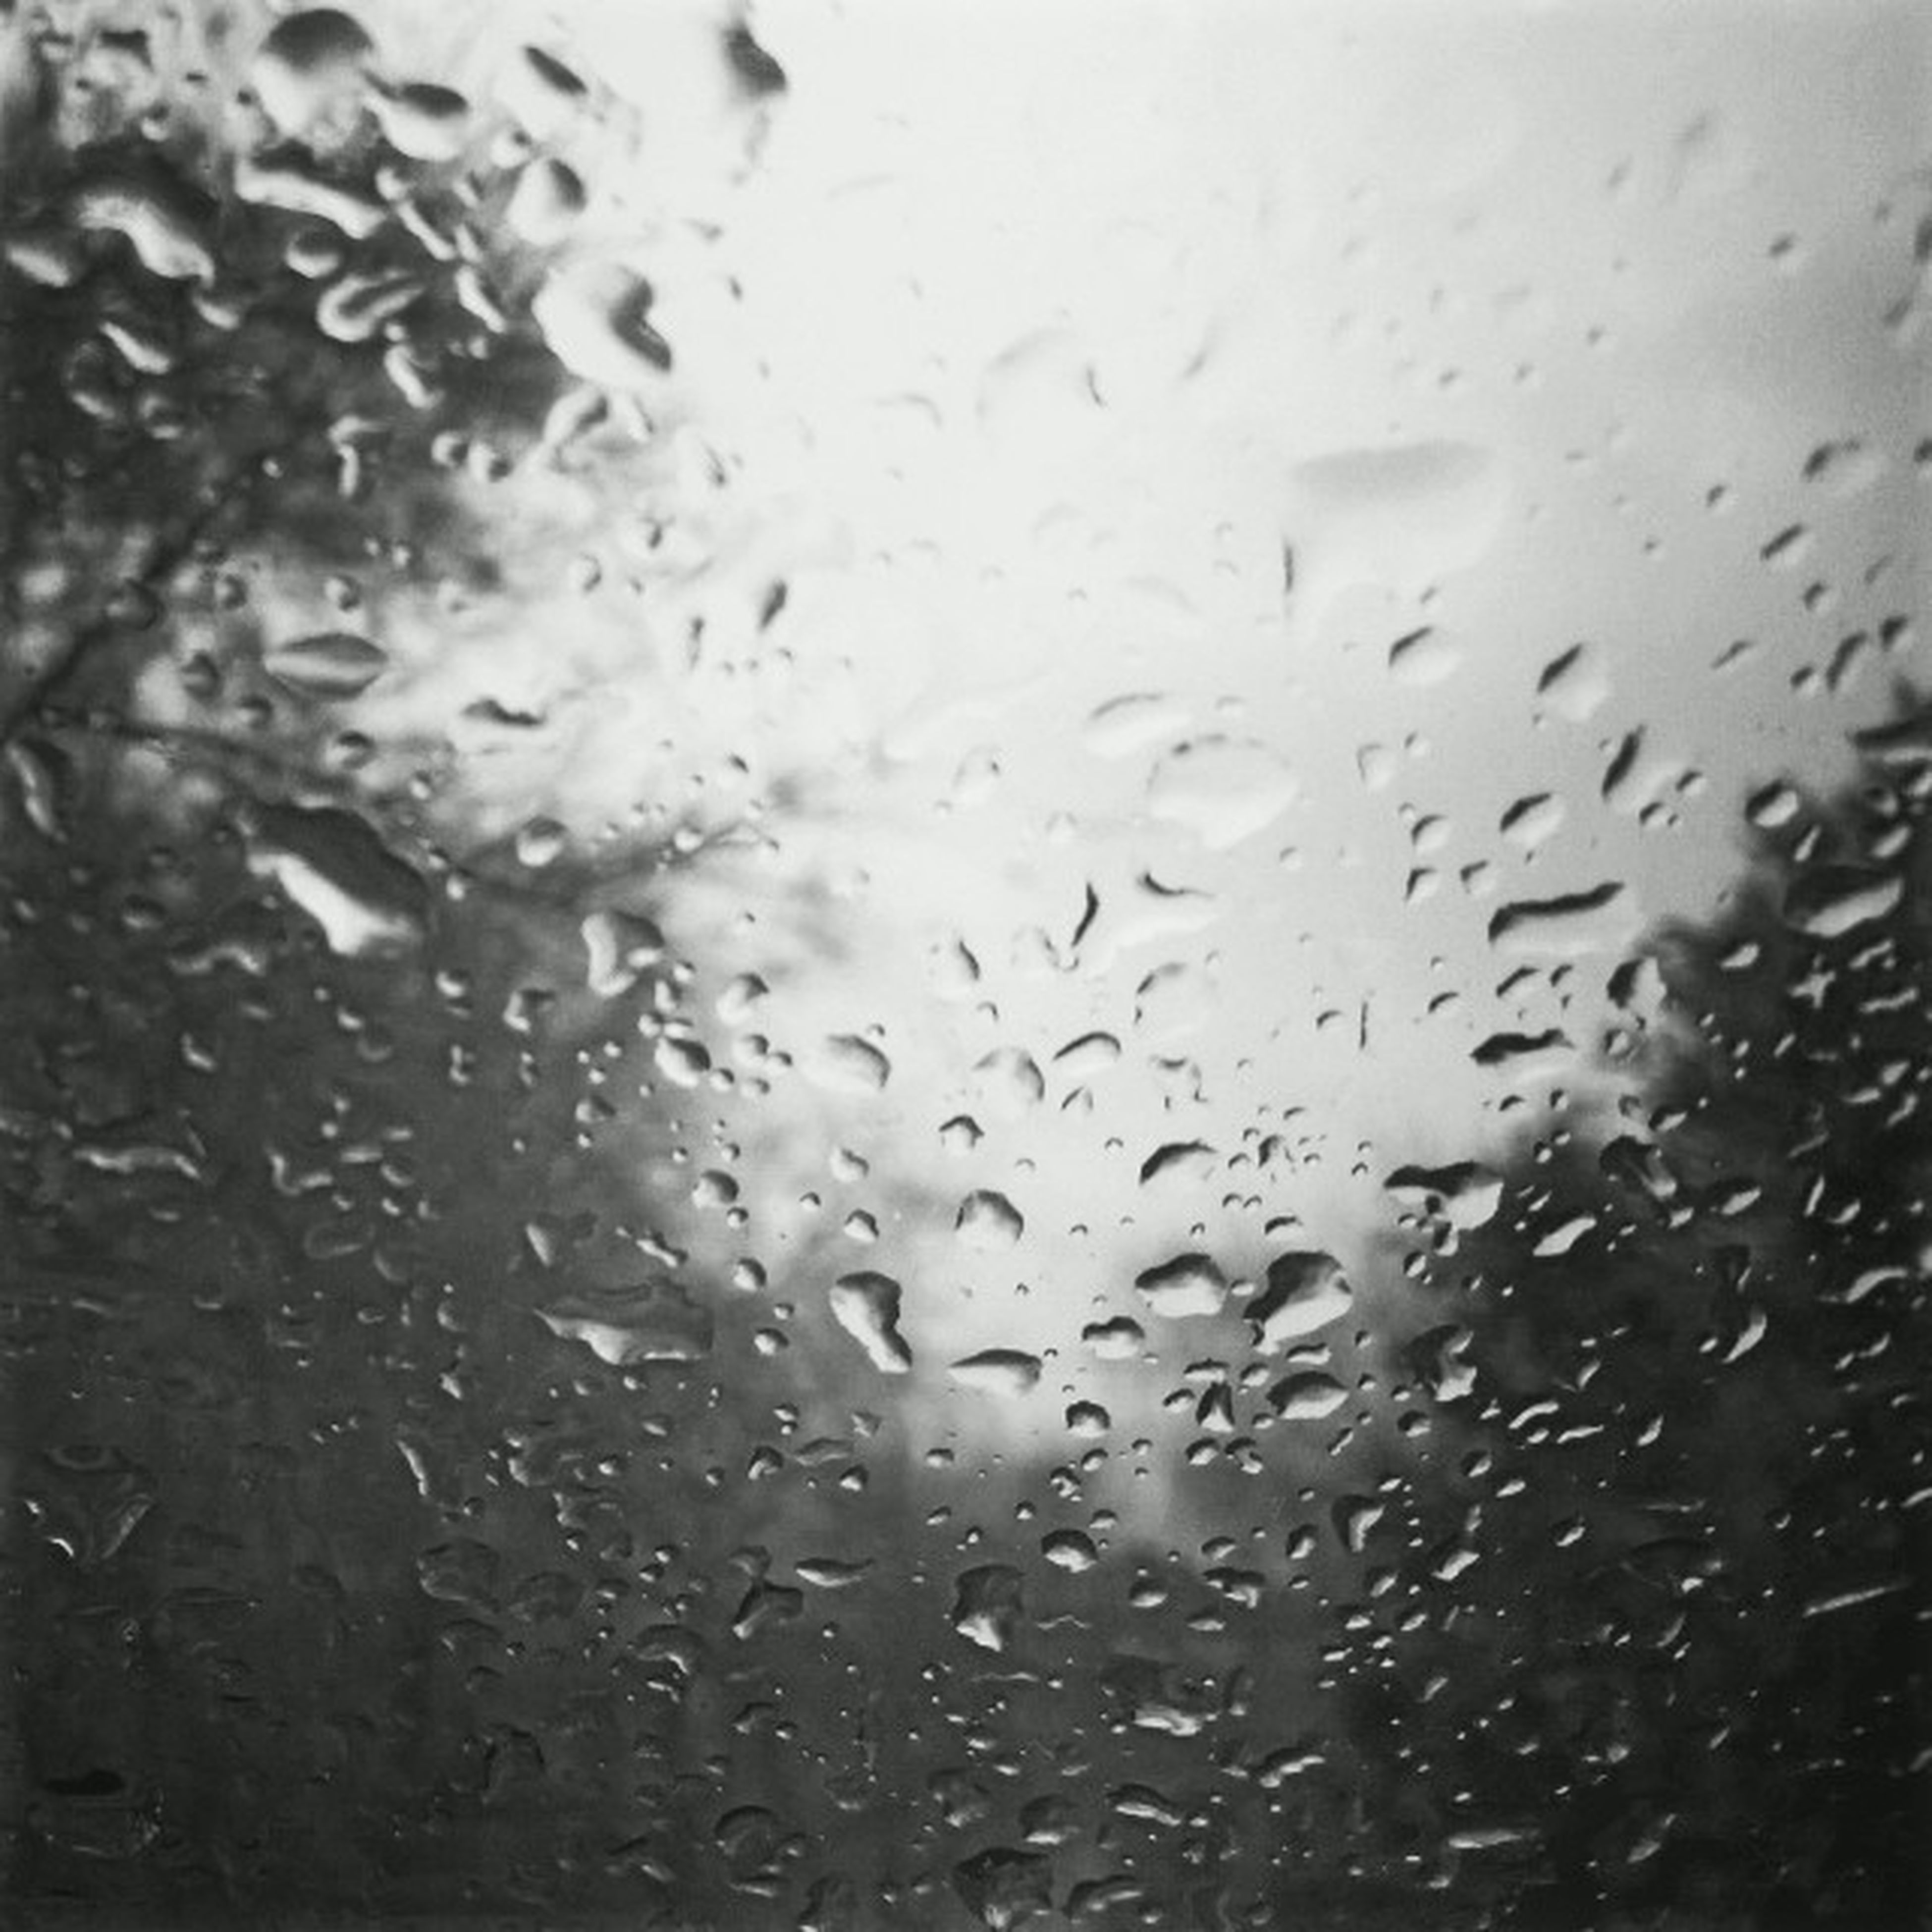 drop, wet, window, rain, indoors, transparent, water, glass - material, raindrop, full frame, backgrounds, weather, glass, season, close-up, focus on foreground, water drop, droplet, monsoon, no people